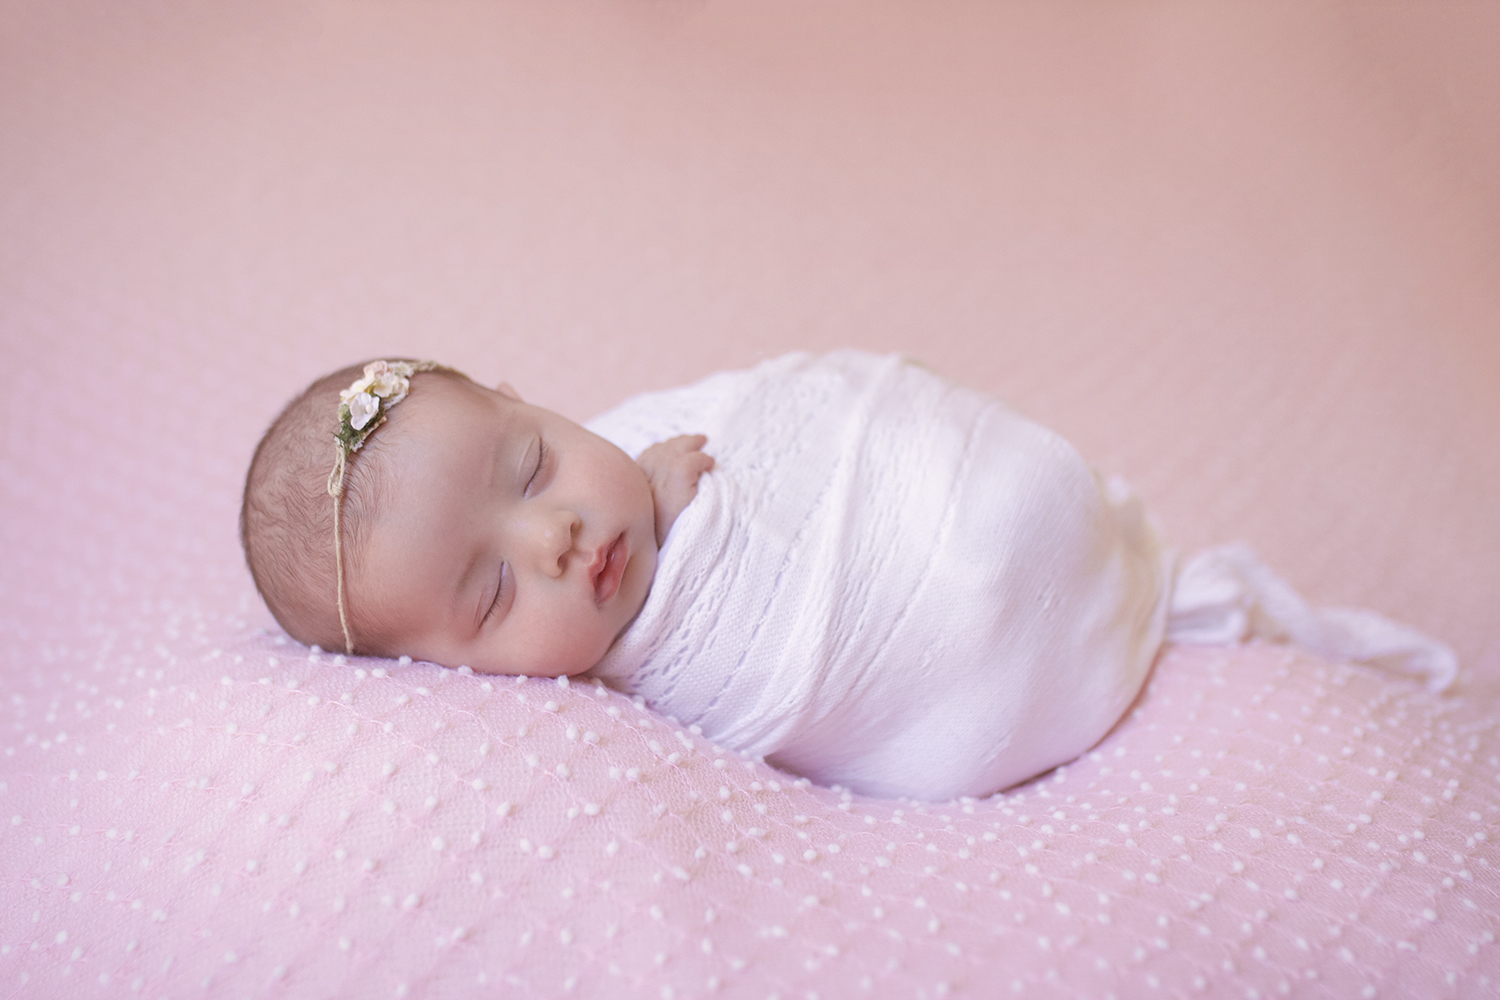 Newborn baby girl sleeping on pink dot blanket wrapped in white wrap with flower tieback